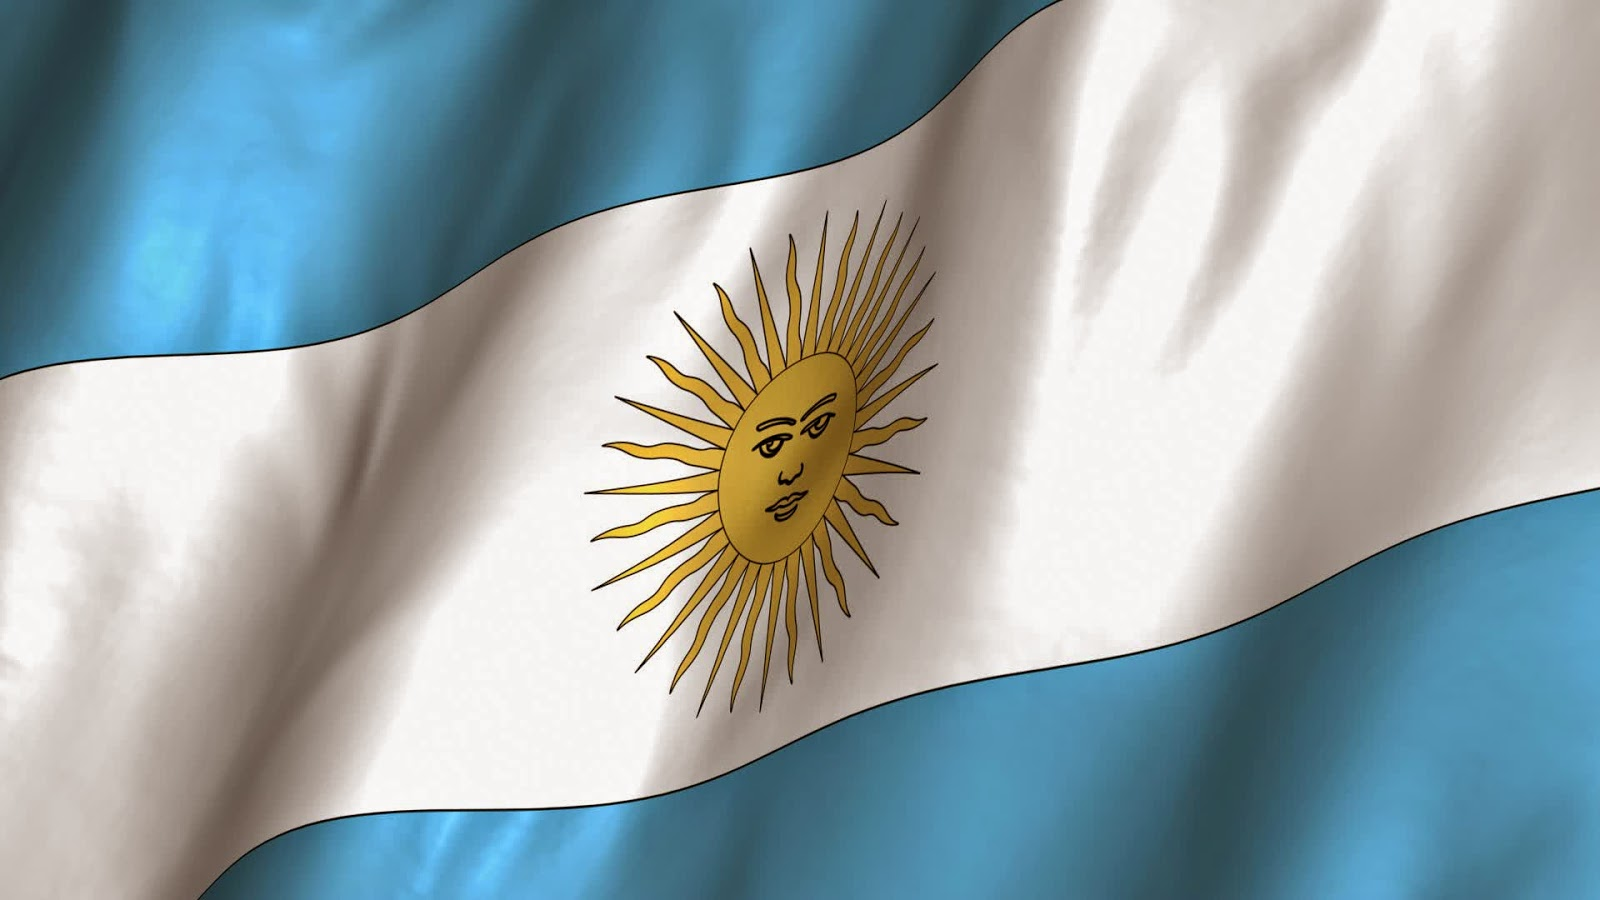 Argentina Flag What Does The Sun Mean